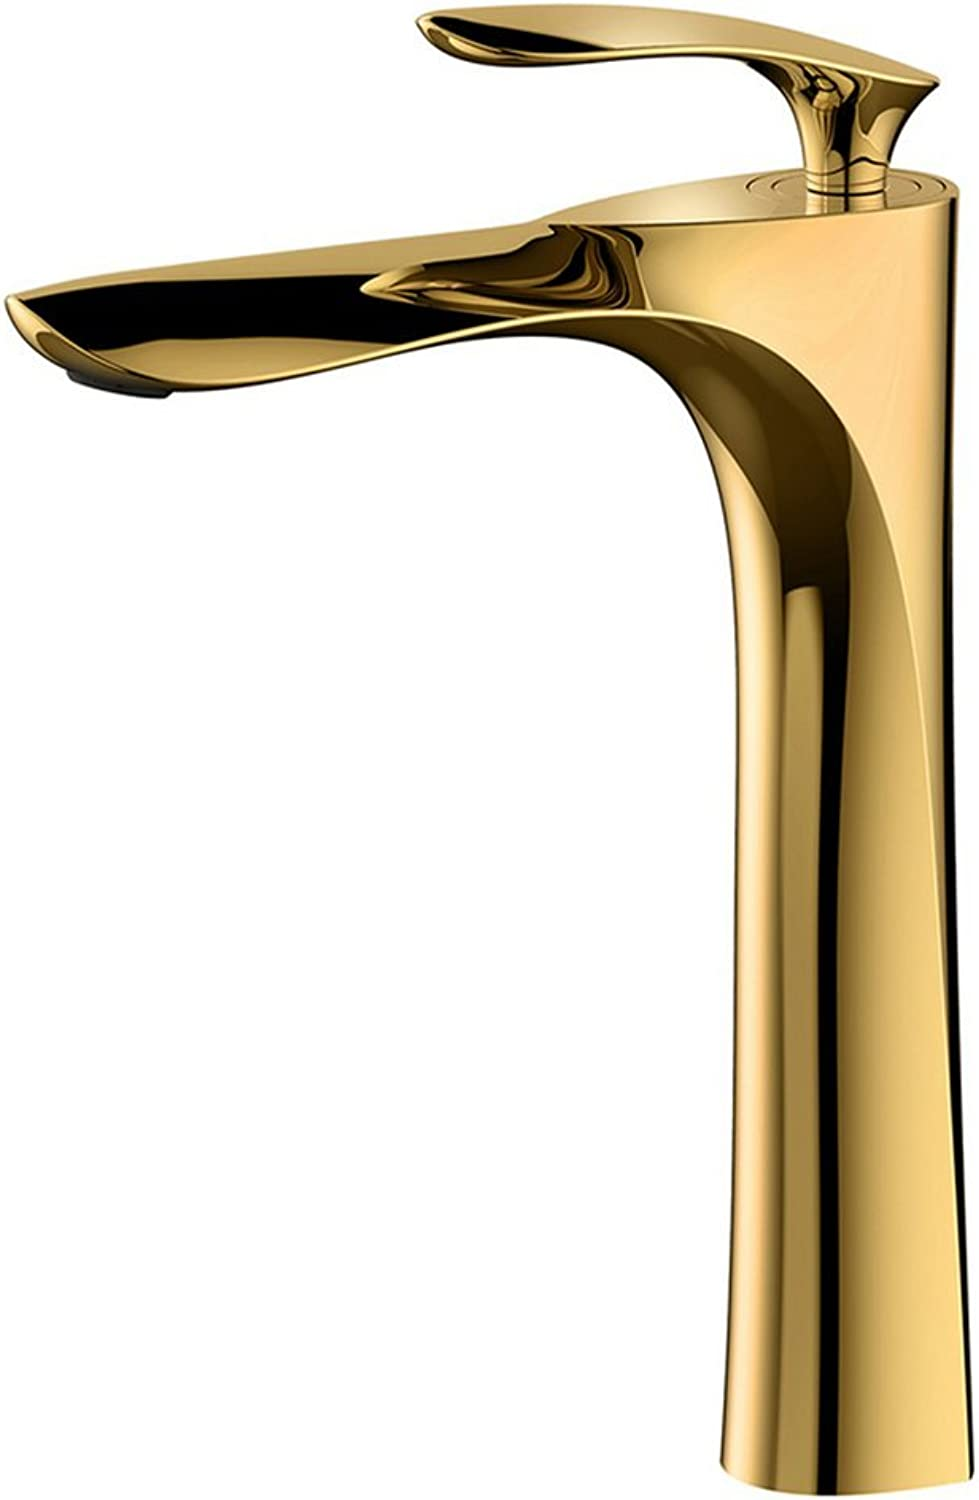 Faucets, Faucets, Basins, Faucets, hot and Cold Water Washing, Bathroom Cabinet, Faucet, Faucet, Faucet and Faucet.